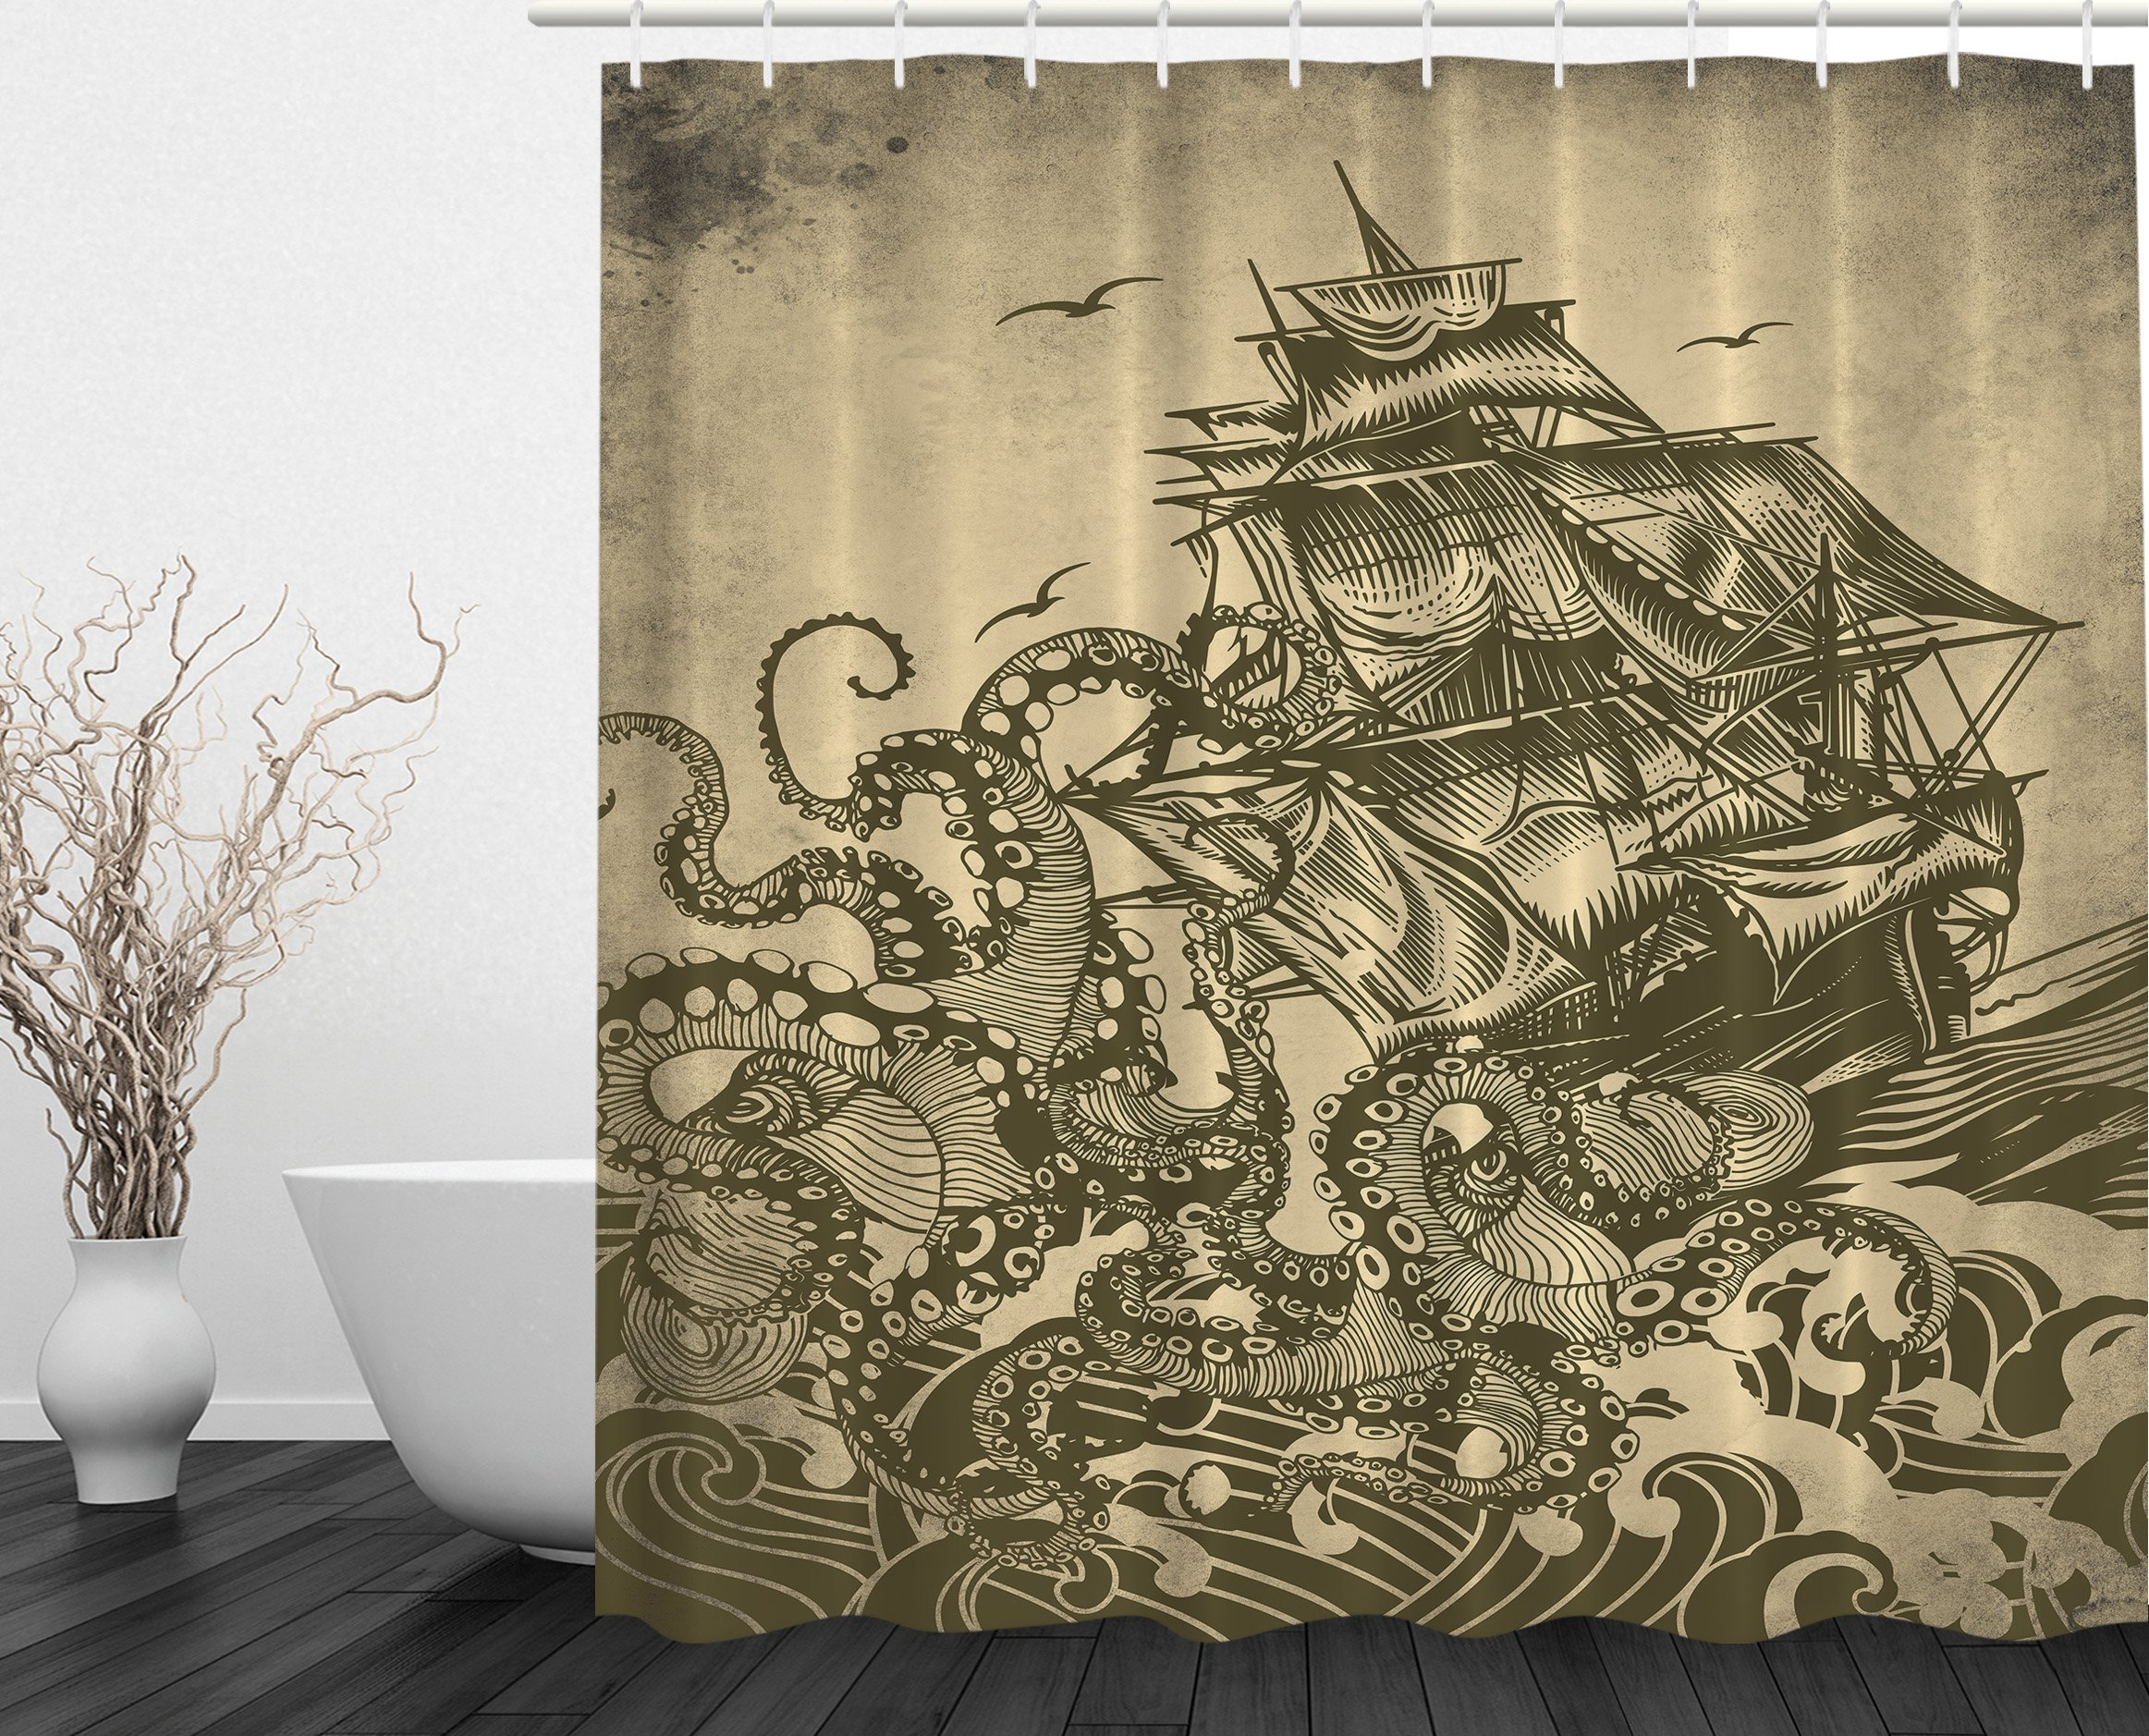 Ambesonne Ocean Shower Curtain Sail Boat Waves and Octopus Kraken Tentacles Country Decorations for Bathroom Sepia Print Polyester Fabric Shower Curtain, Yellow Olive